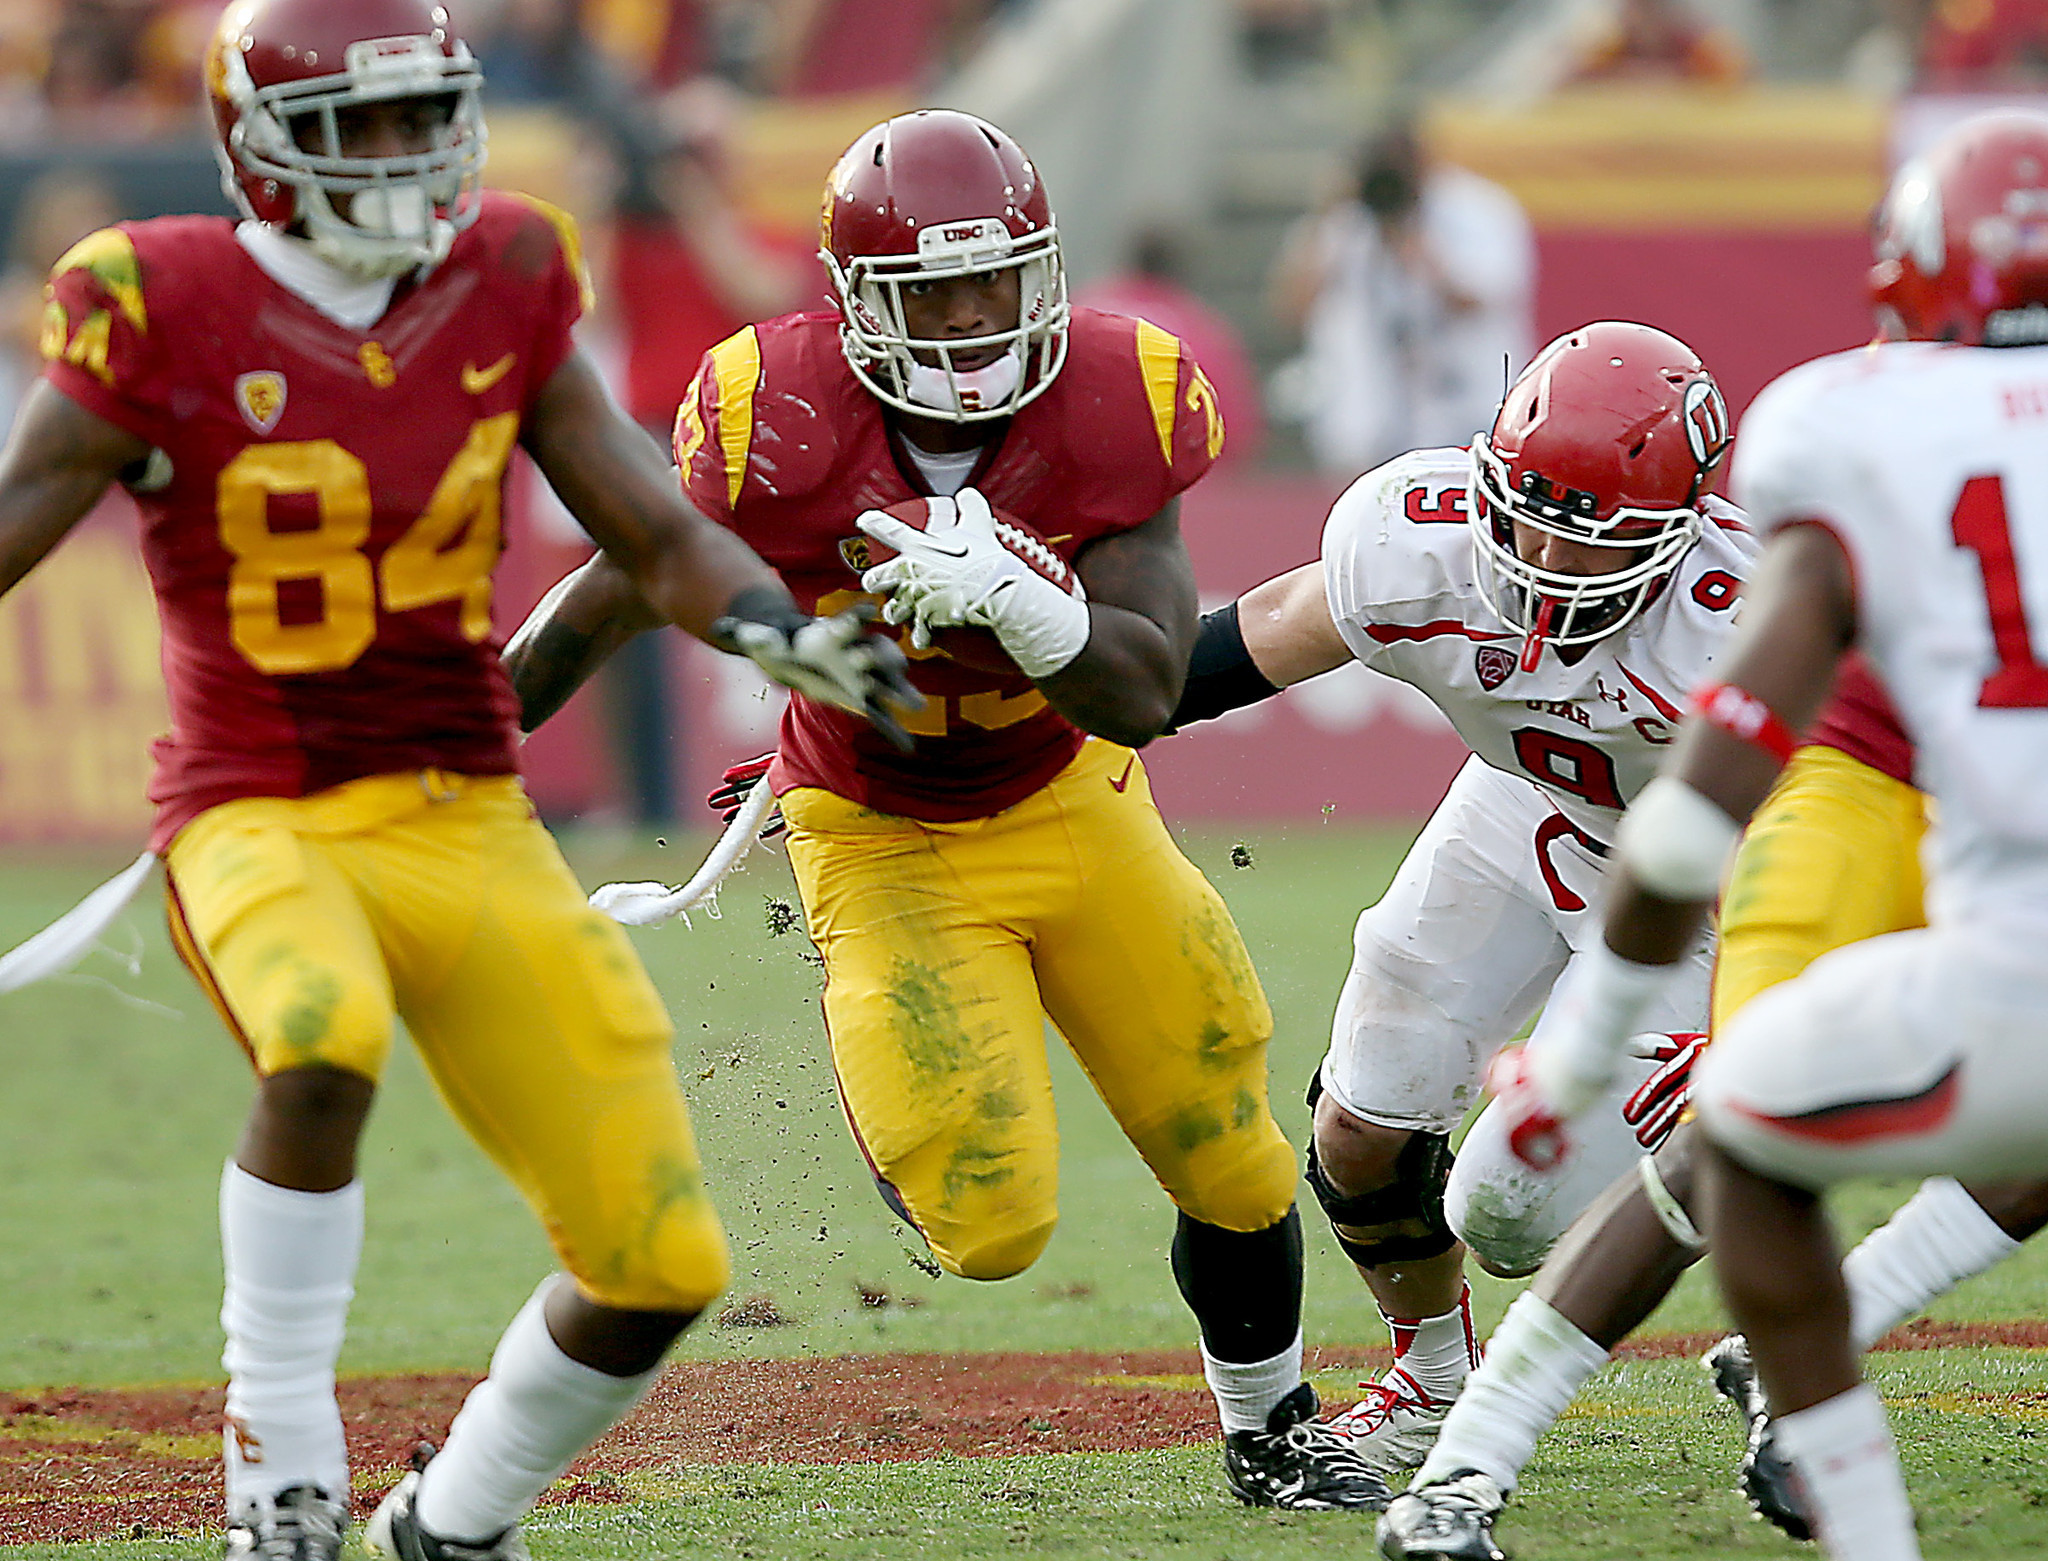 Trojans tailback Tre Madden attempts to come back from toe injury